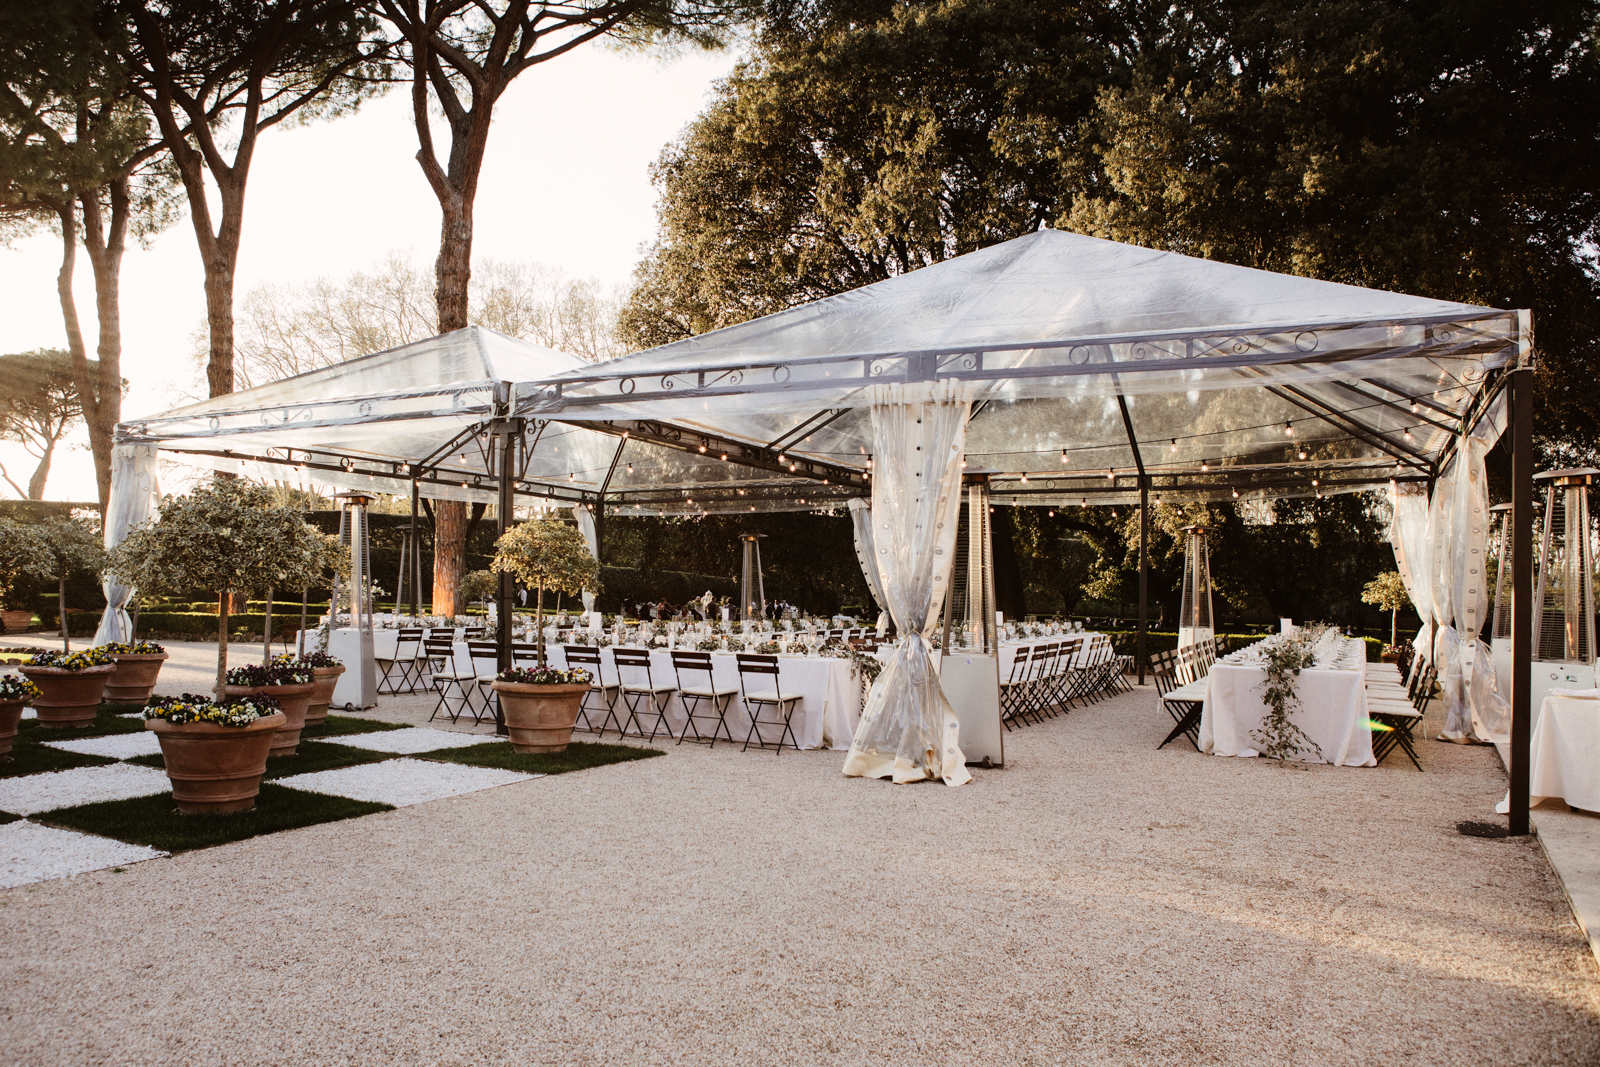 A Luxury Pastel-Palette Destination Rome Wedding - The Overwhelmed Bride Wedding Ideas Inspiration Blog